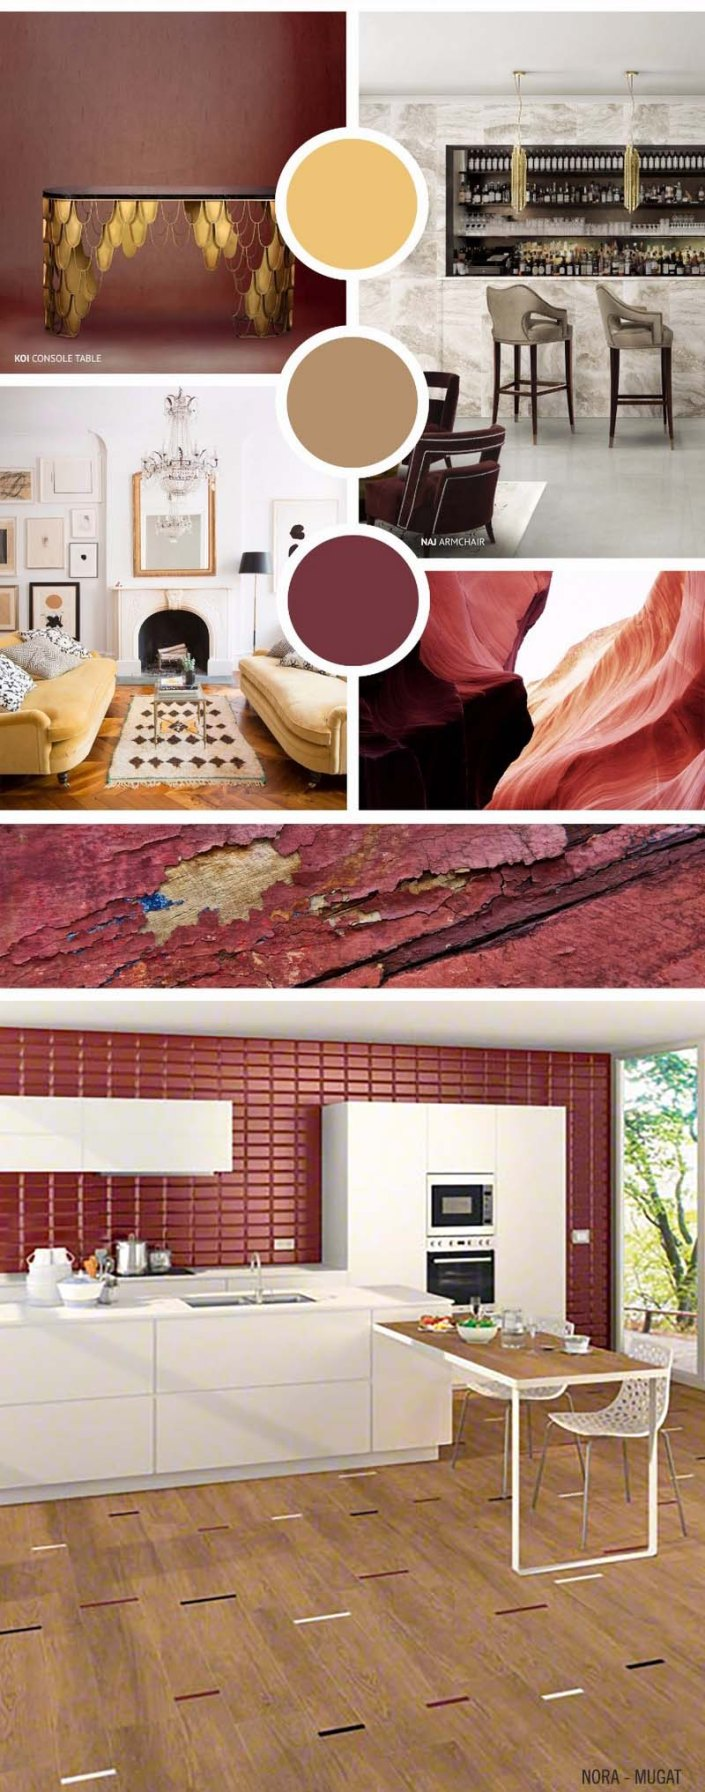 5_Decorate-Your-Interiors-Using-Pantones-2018-Colour-Trends-Predictions-2